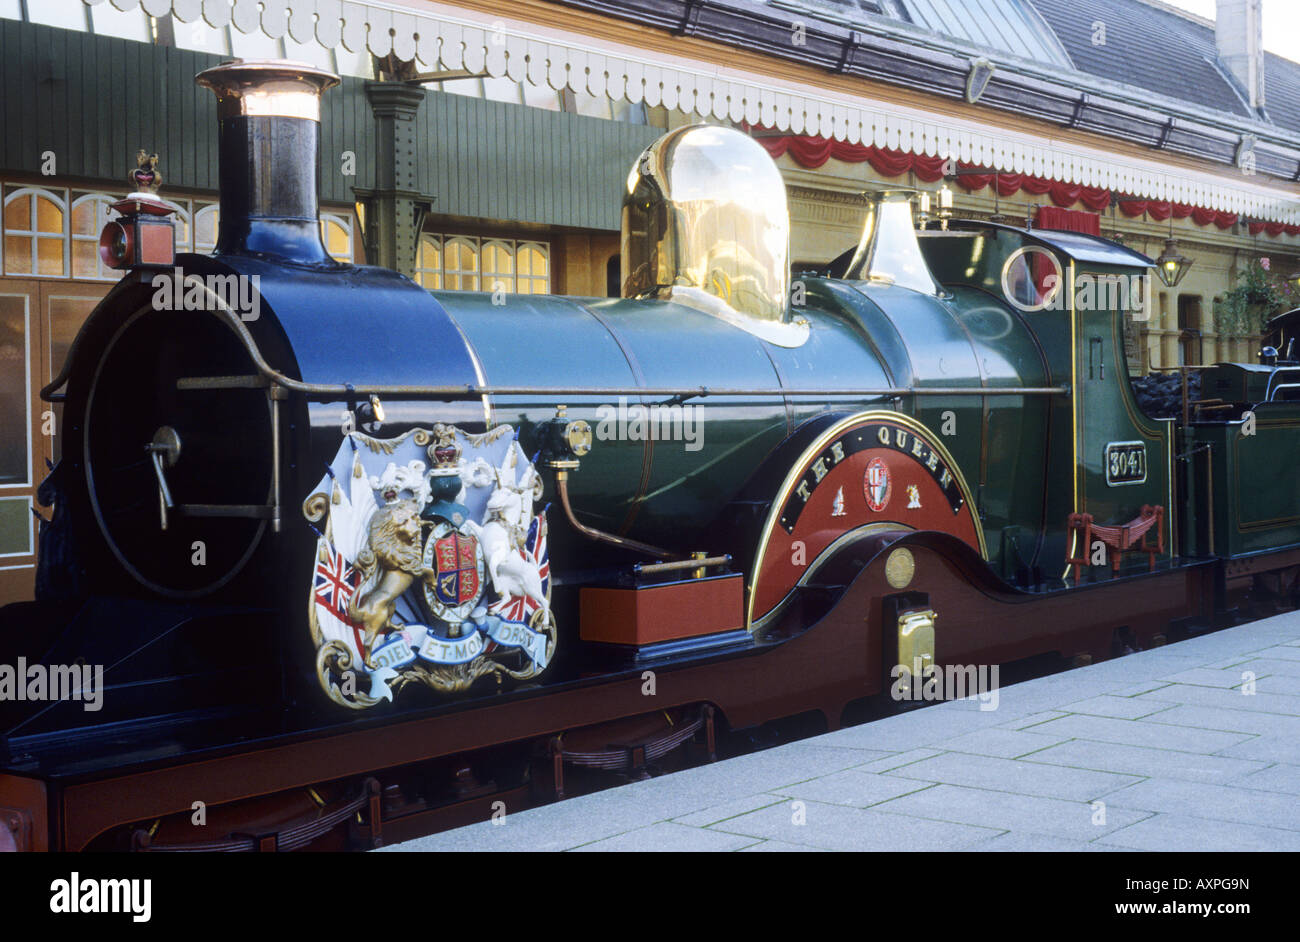 Windsor Royalty and Empire Exhibition Royal Train steam engine Windsor and Eton Railway Station Berkshire England - Stock Image